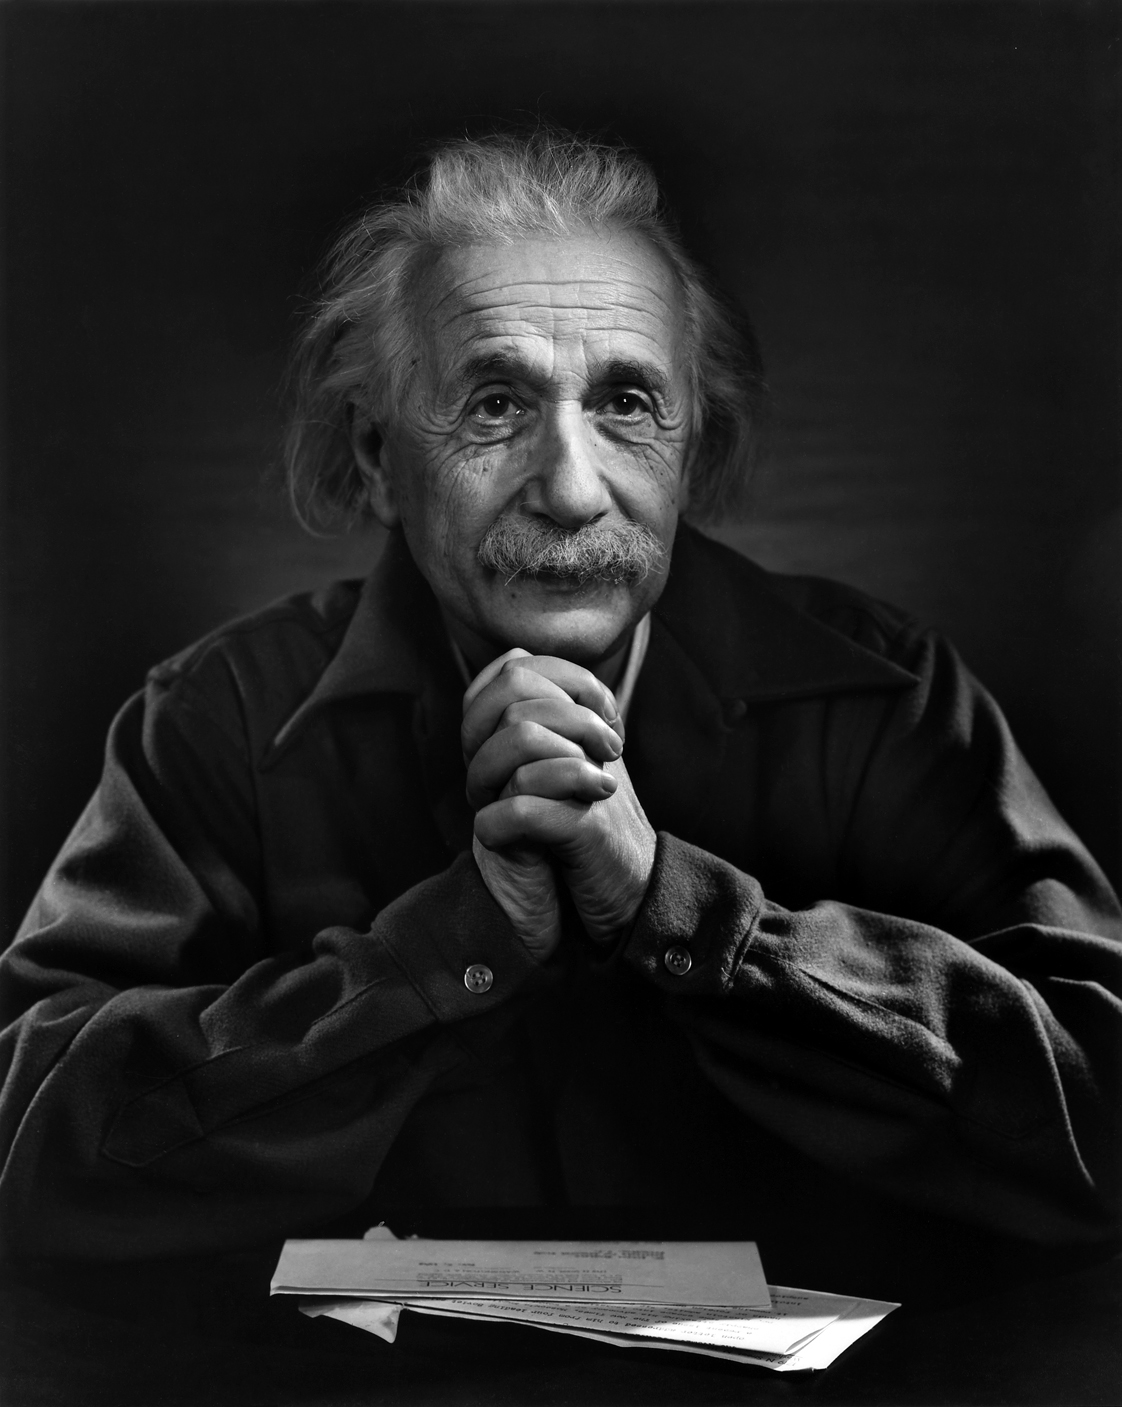 Black and white photograph of Albert Einstein.